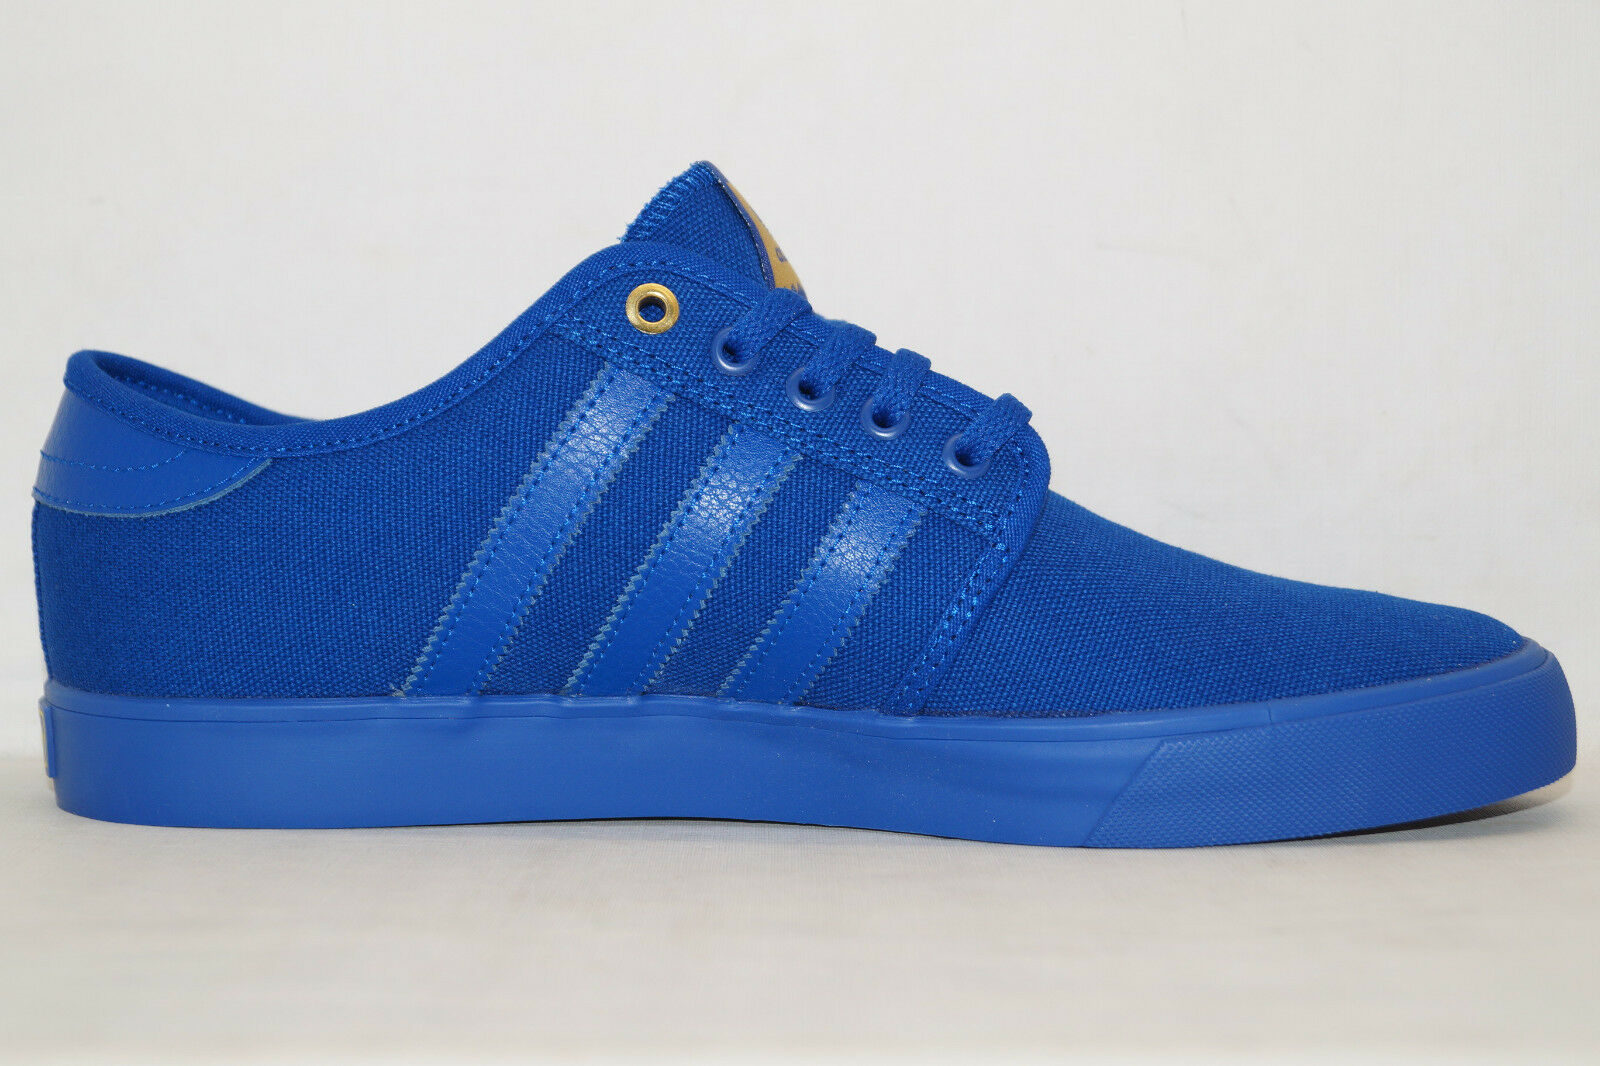 ADIDAS Originals Seeley skateboarding UE ALL 43.3 ALL UE BLUE BLU b27347 f9476e